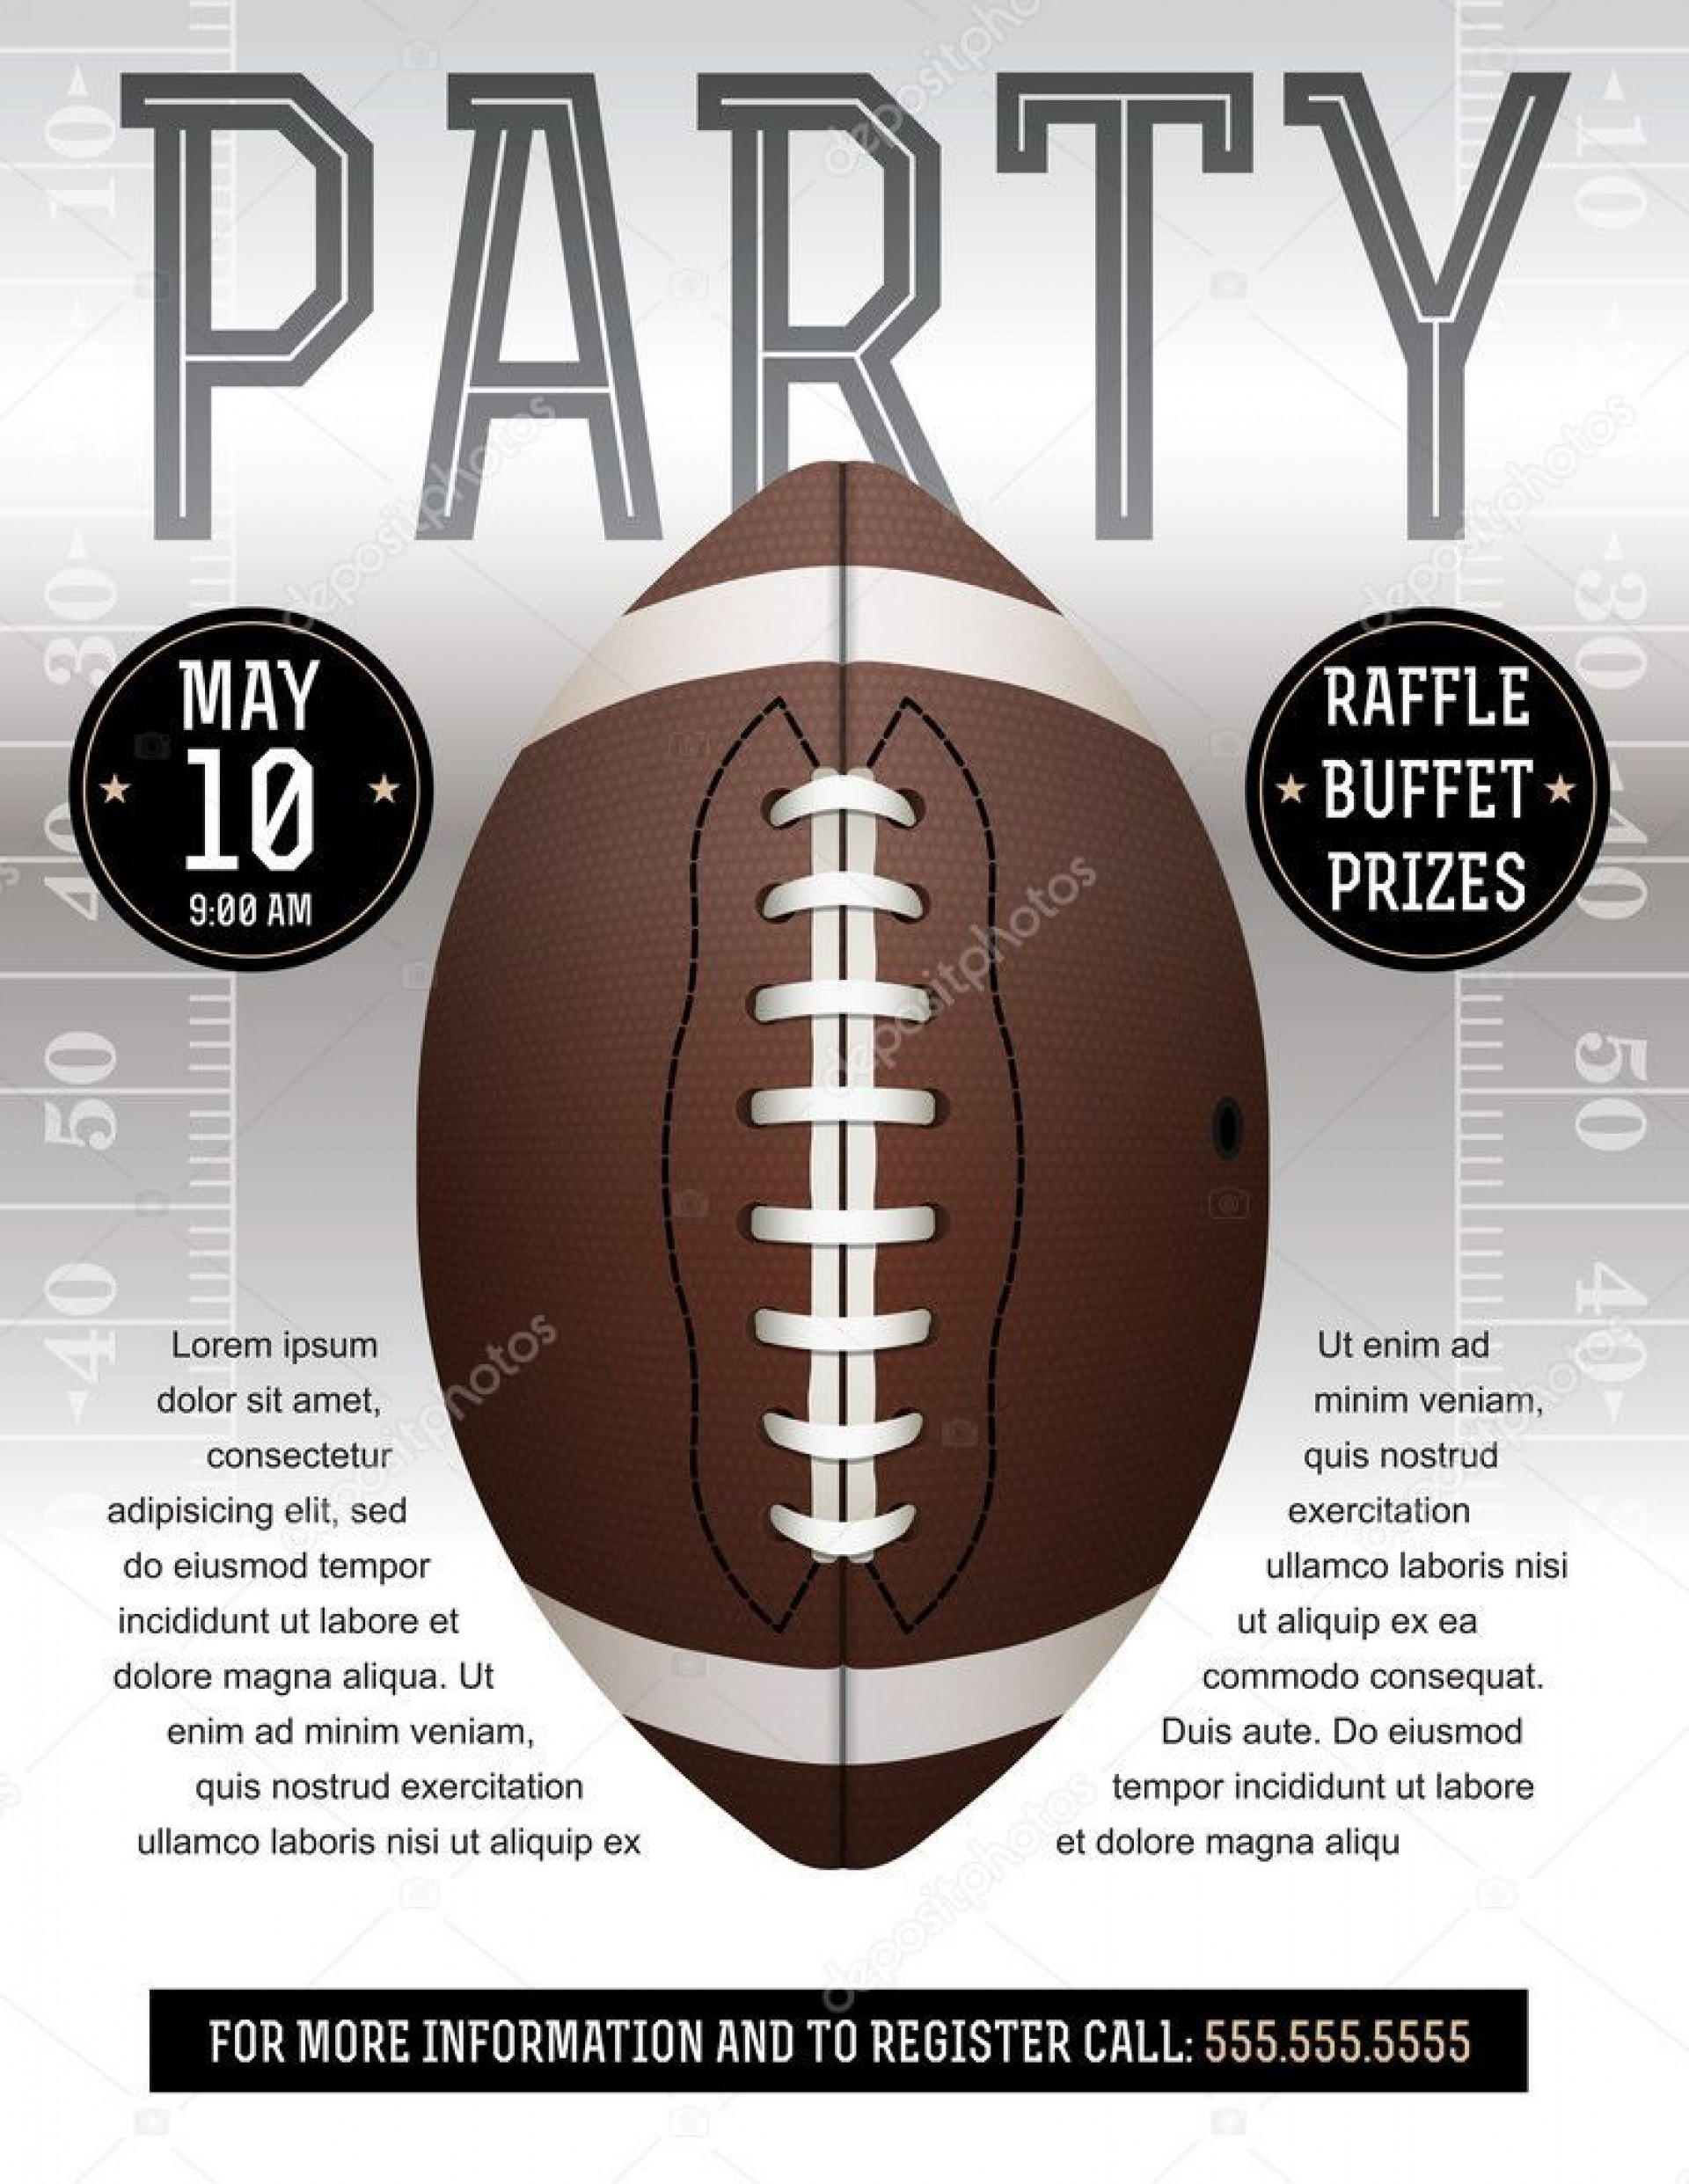 008 Incredible Free Tailgate Party Flyer Template Download Concept 1920